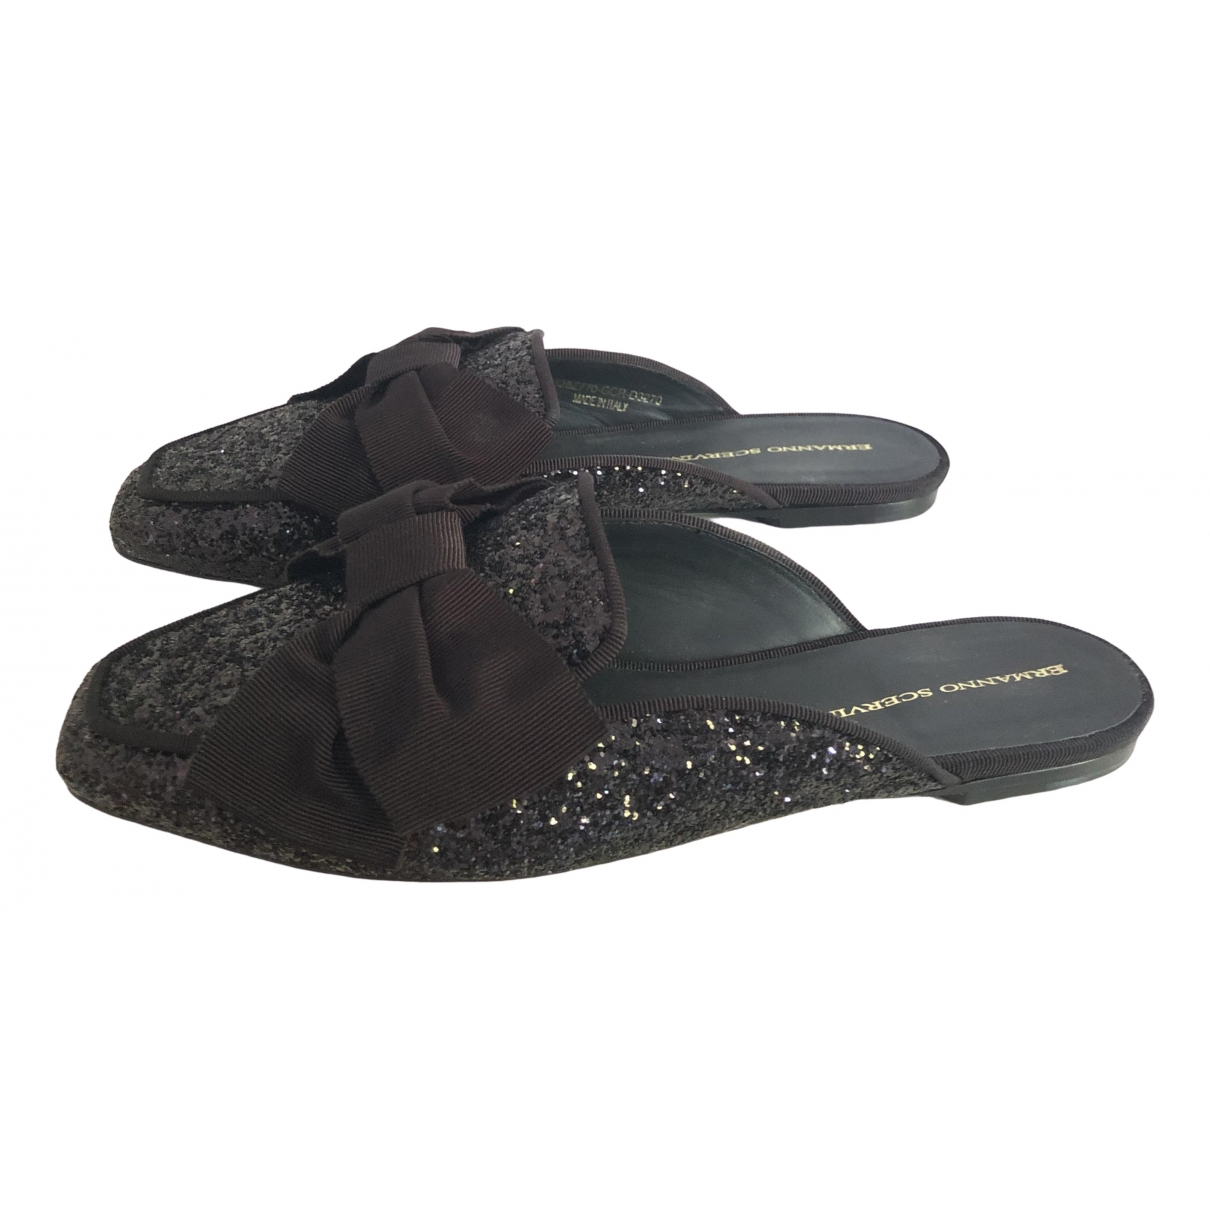 Ermanno Scervino \N Black Glitter Mules & Clogs for Women 41 EU